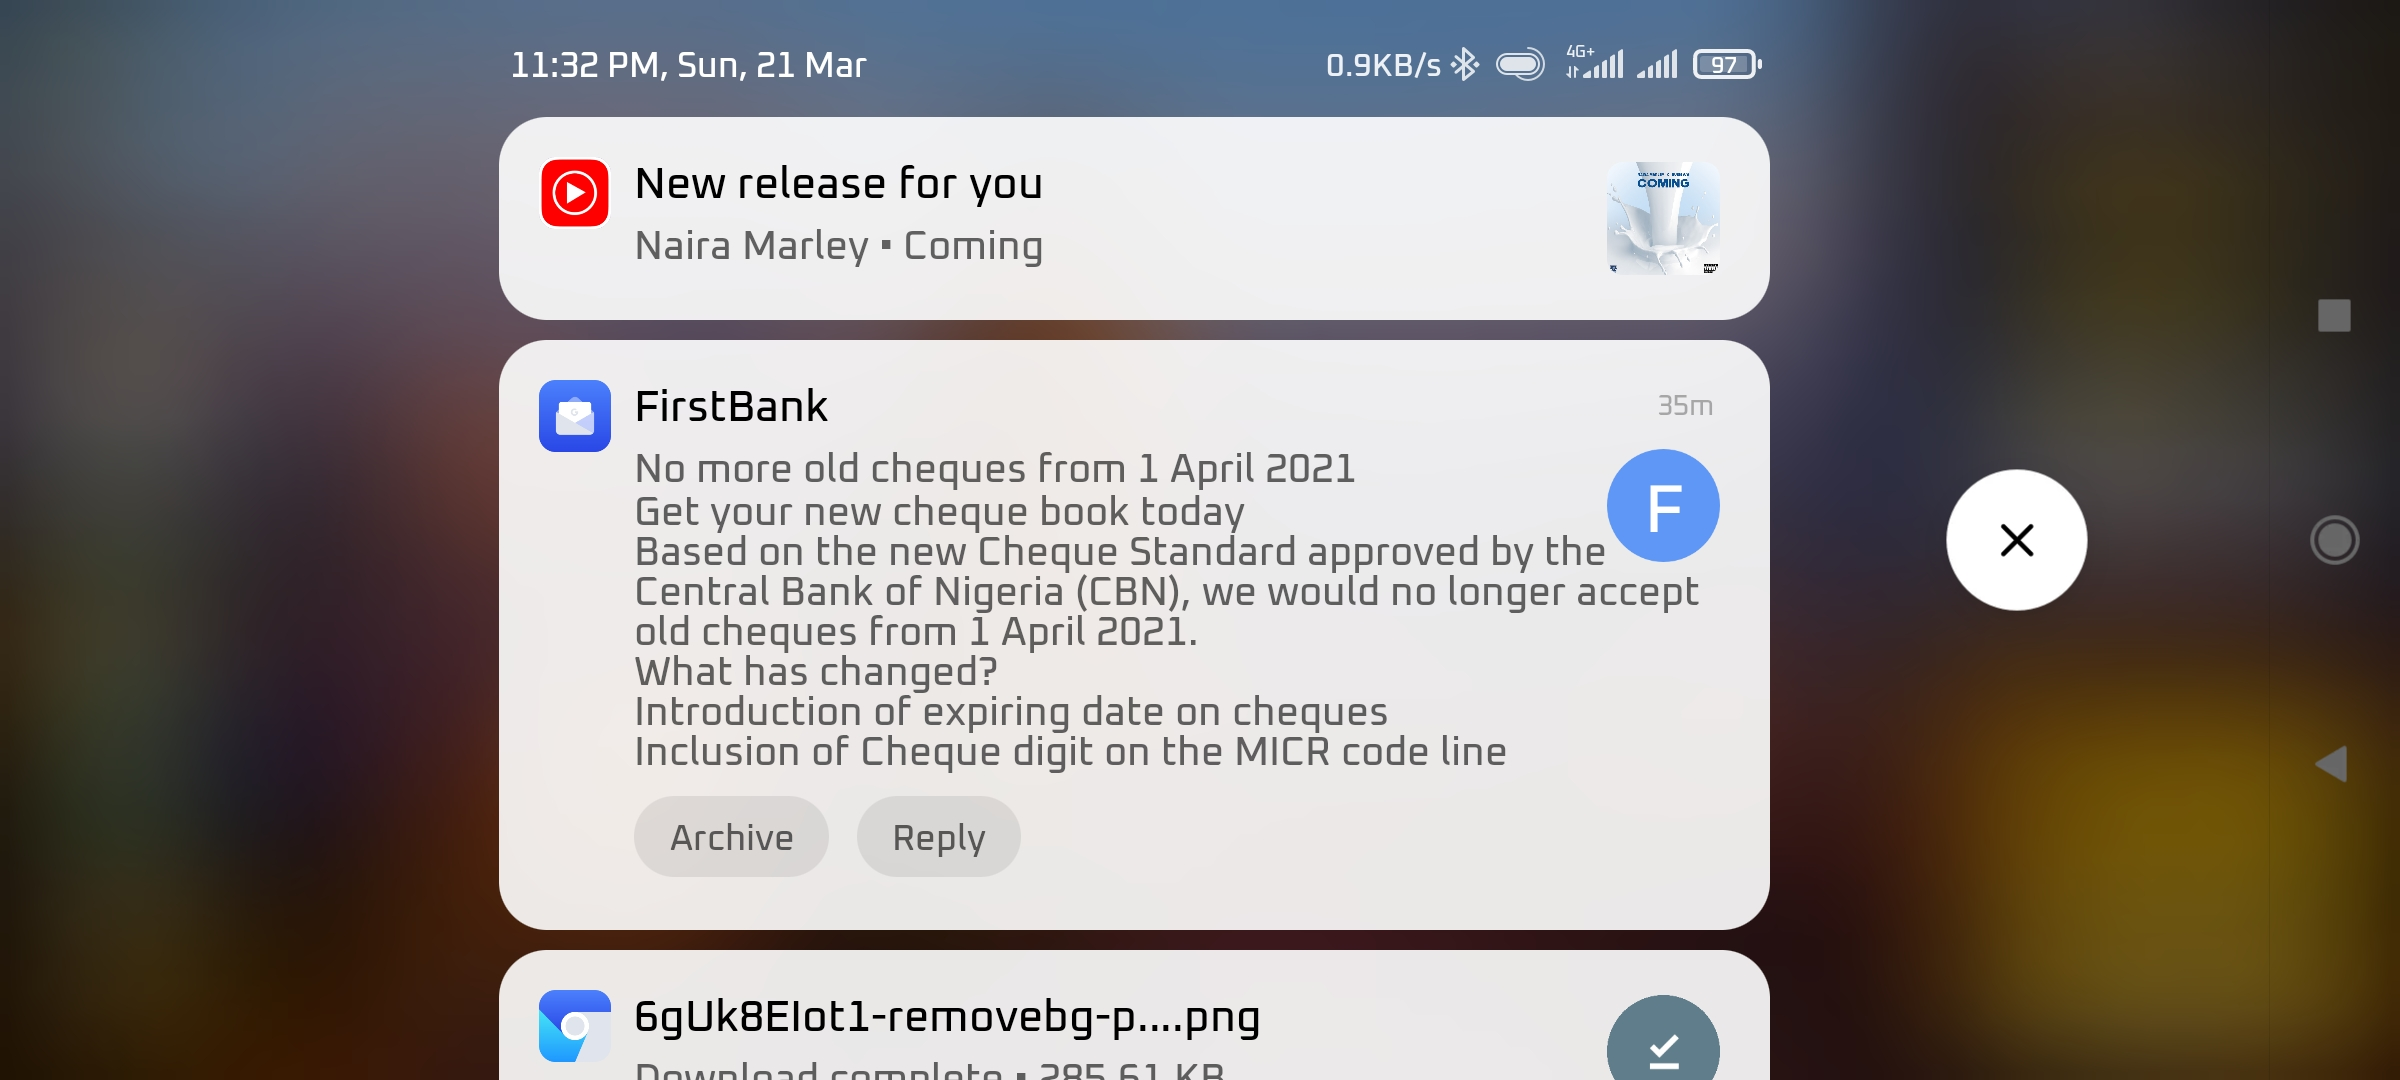 firstbank-nigeria-extends-acceptance-of-old-cheques-deadline-to-1st-april-2021-droidvilla-tech-1-android-tech-blog